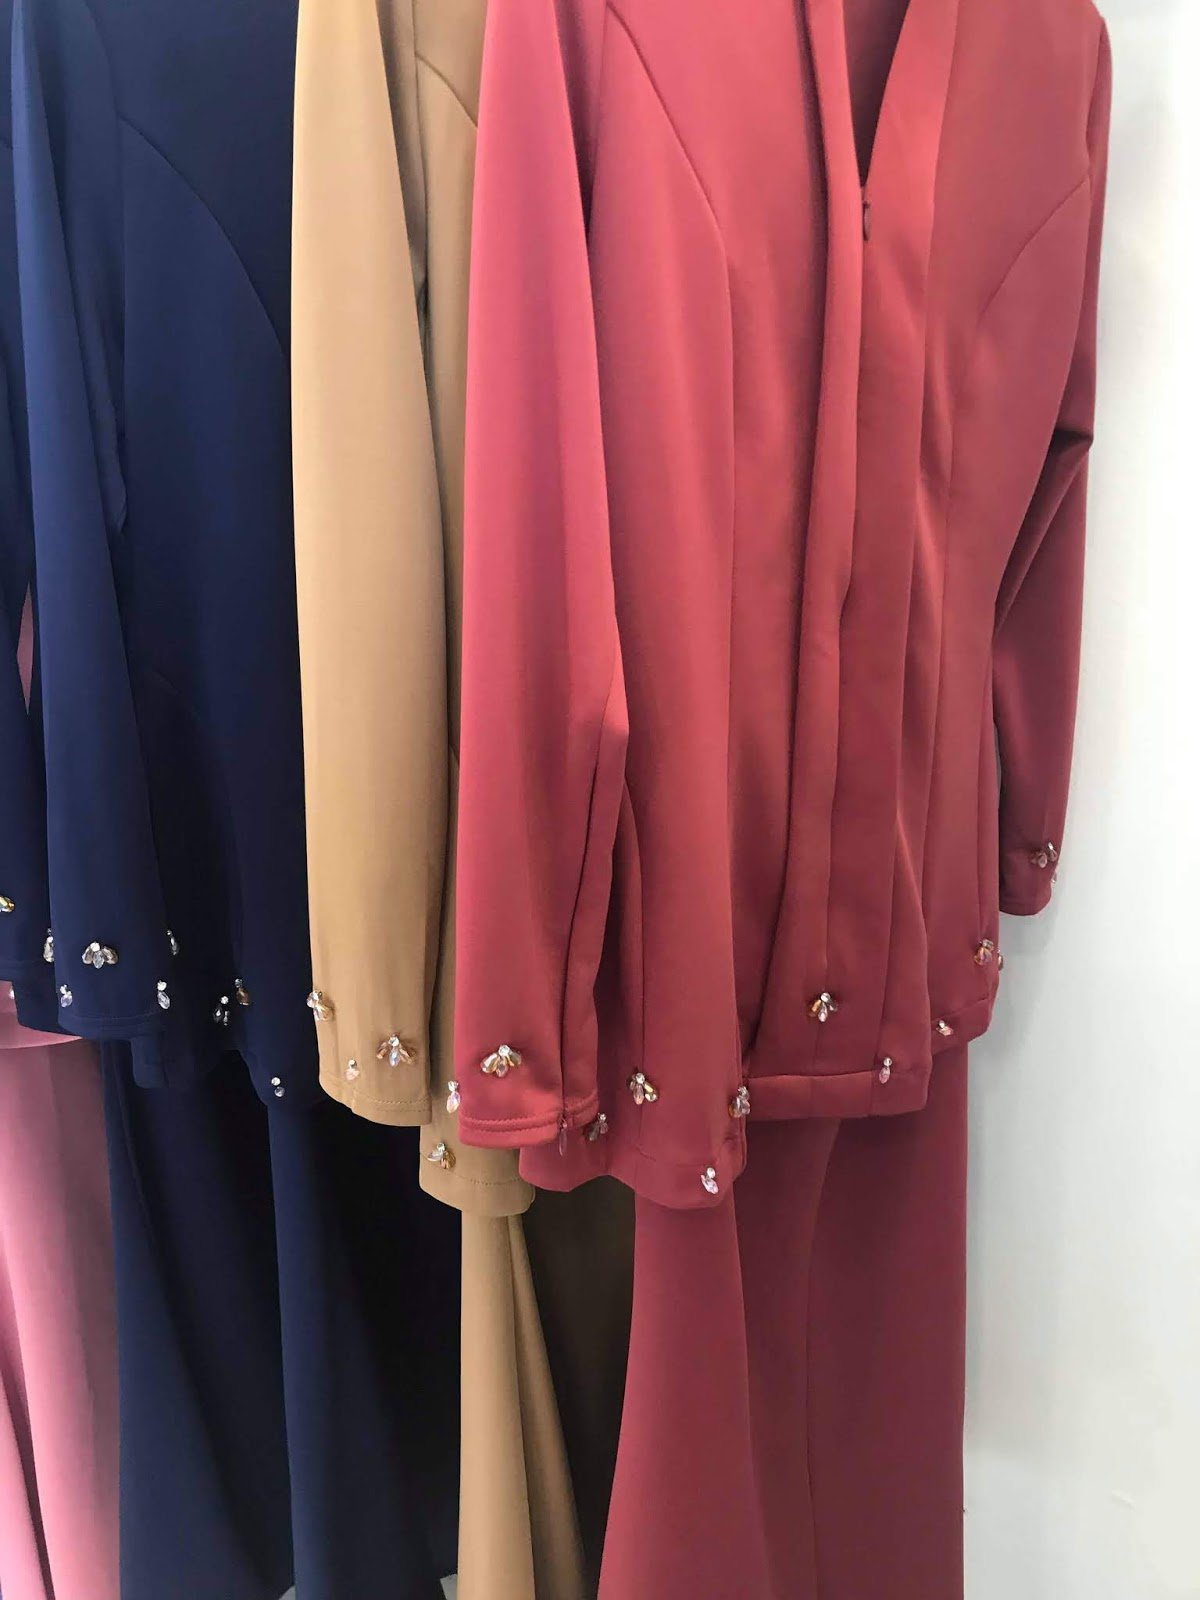 Berbaju merah jambu raya dating